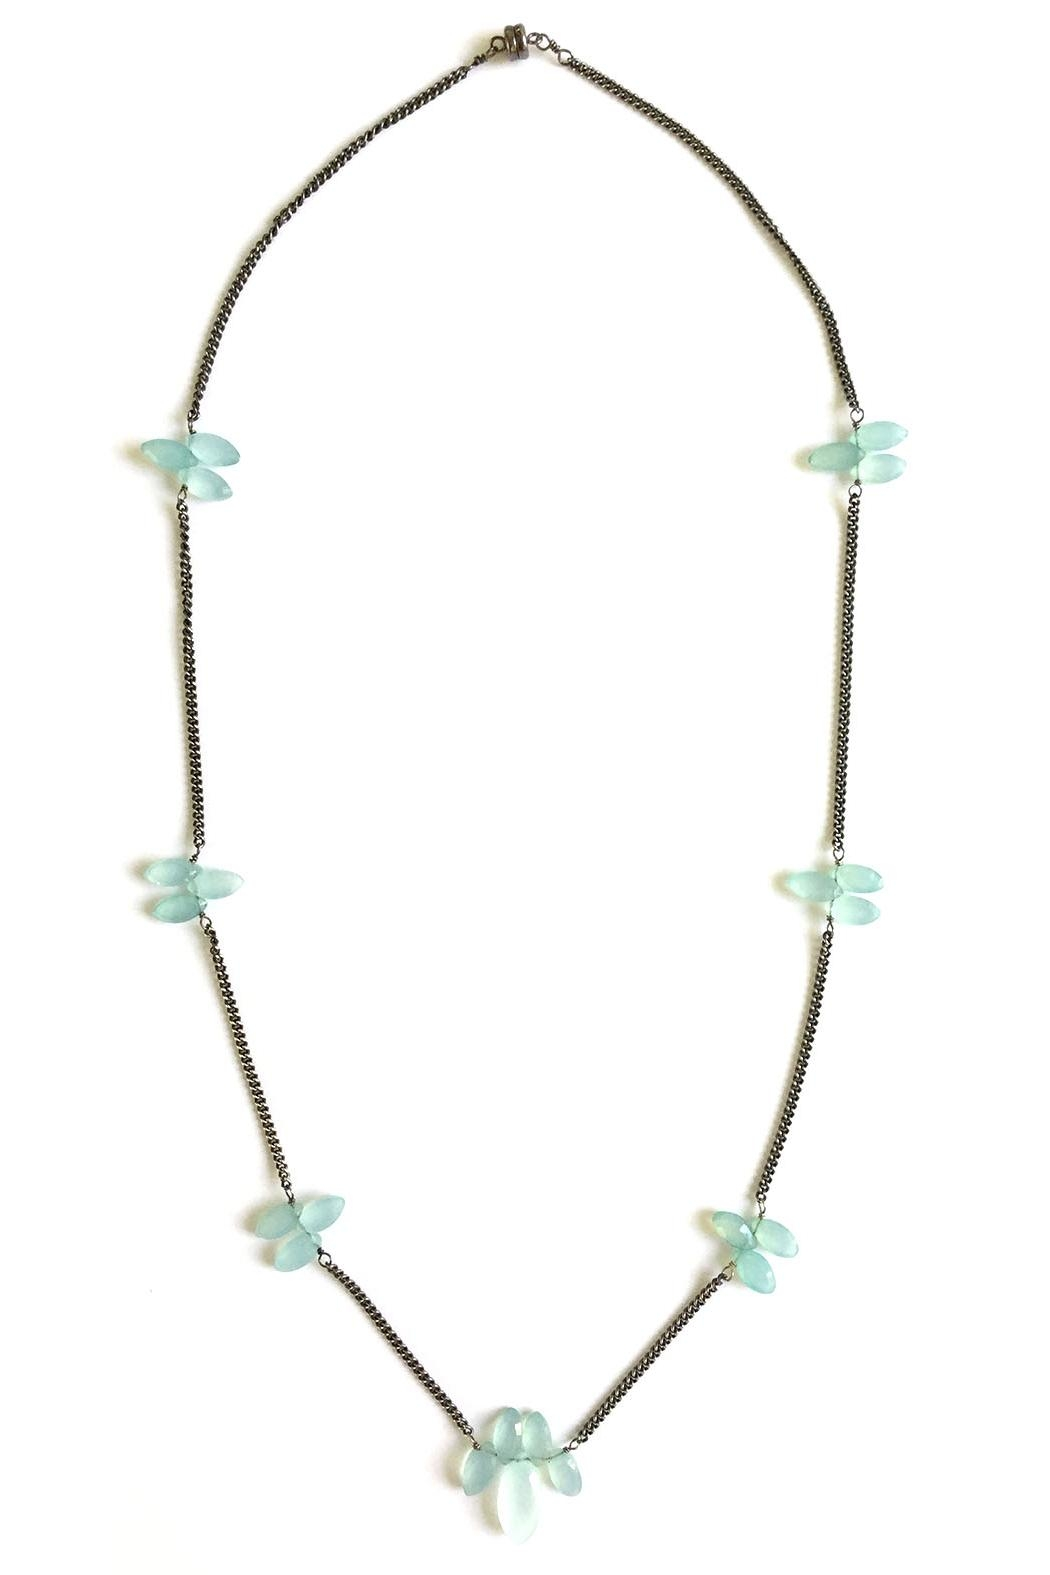 Susan Goodwin Jewelry Chalcedony Necklace - Main Image